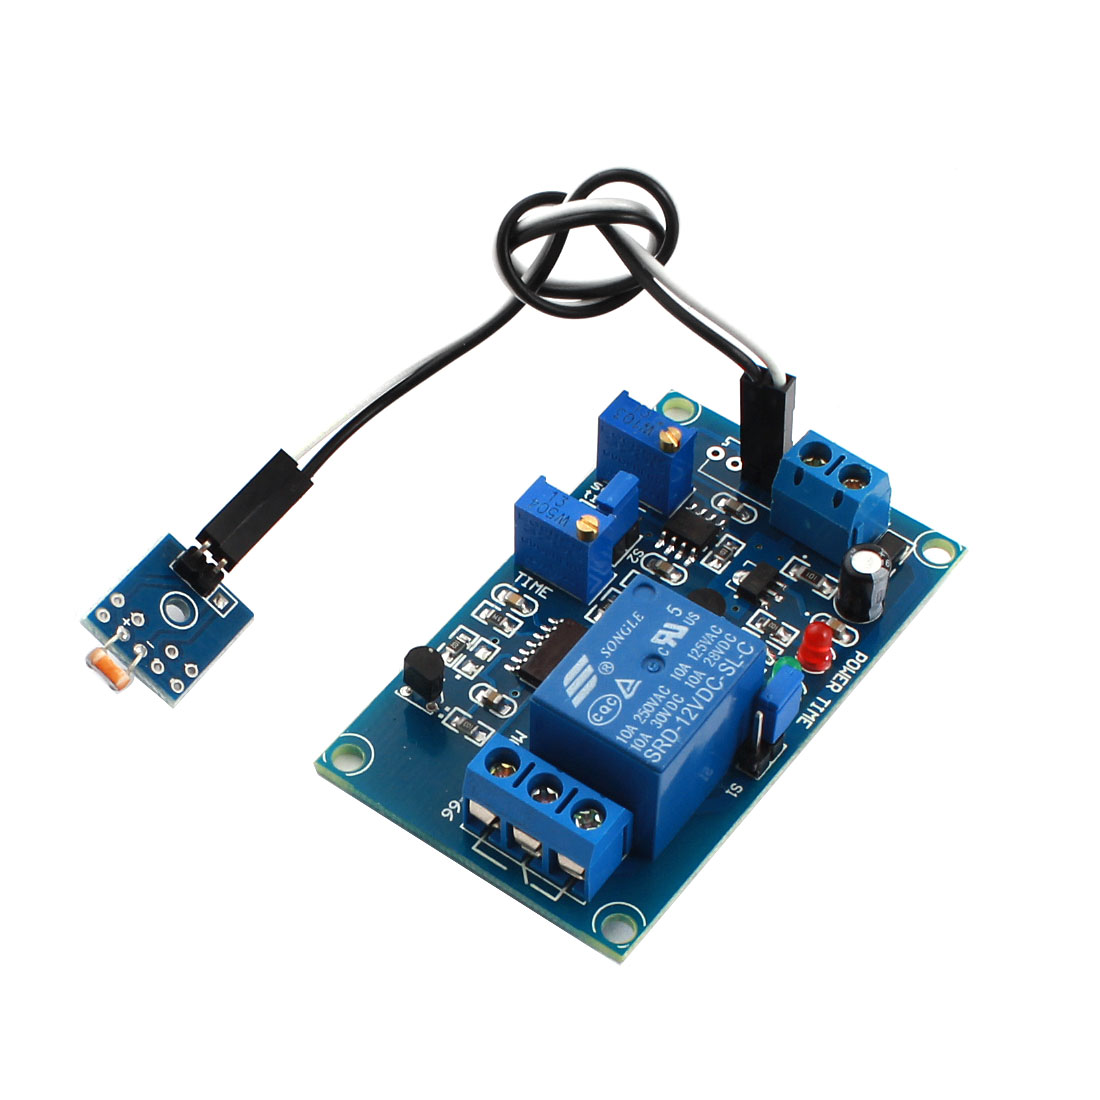 DC12V 1 Channel Non-light Operation Photovaristor Diode Time Delay PCB Board Relay Module